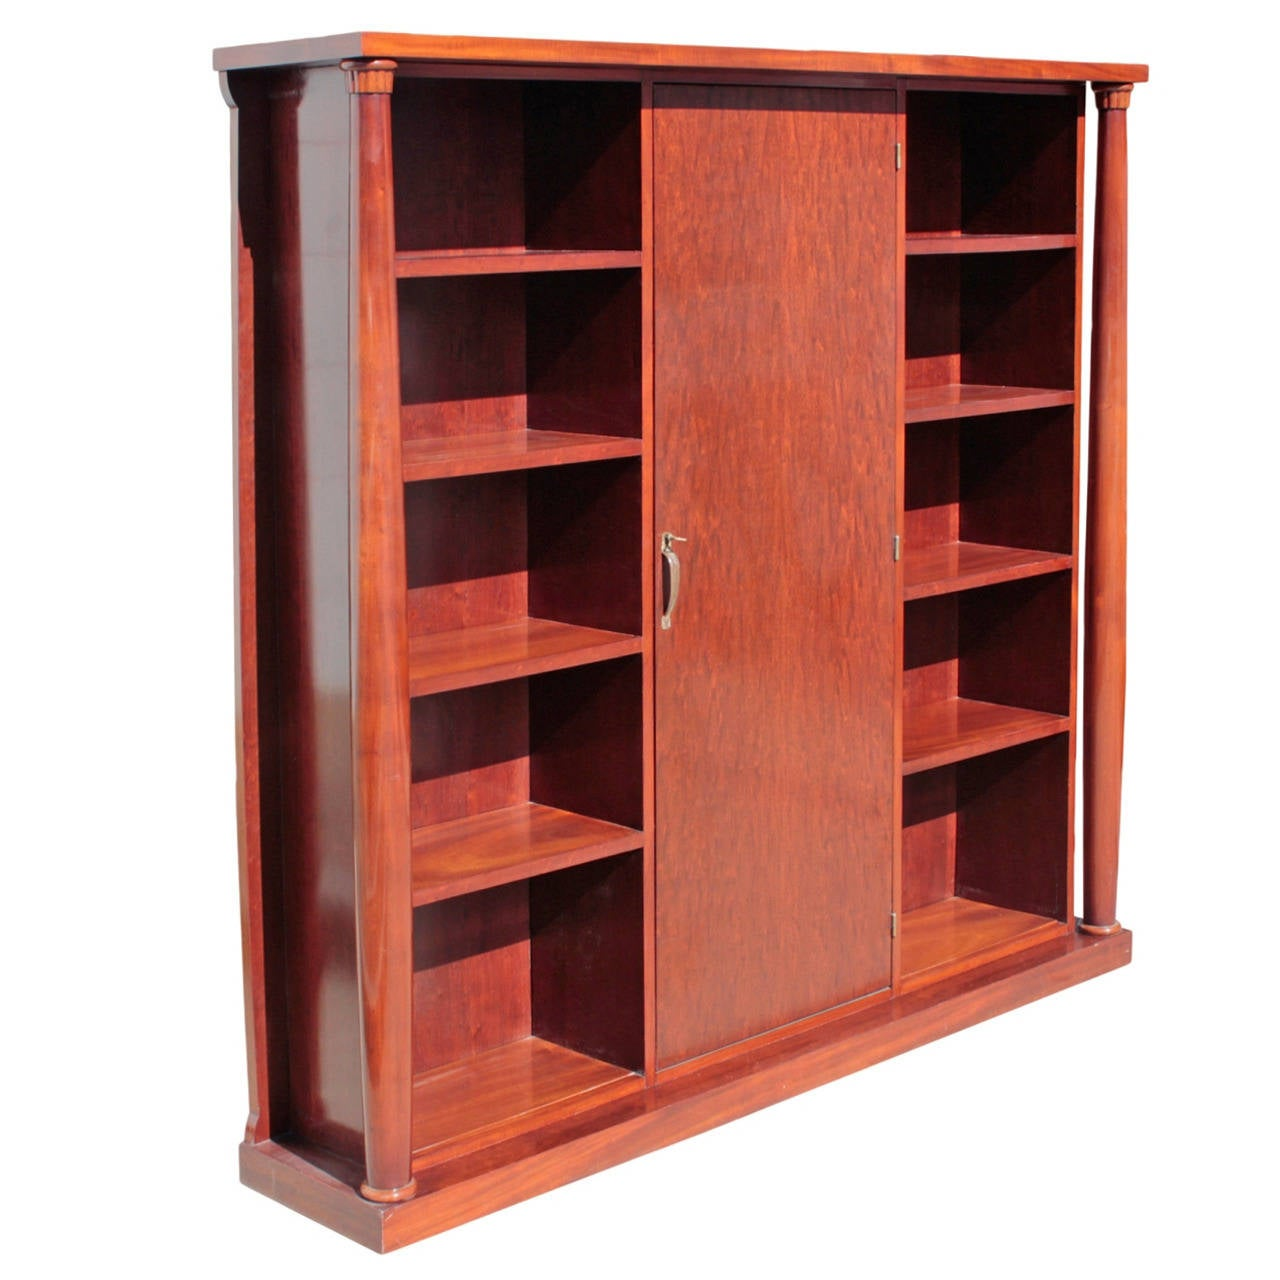 Exhibited French Art Deco Bookcase by Charlotte Chauchet-Guillere